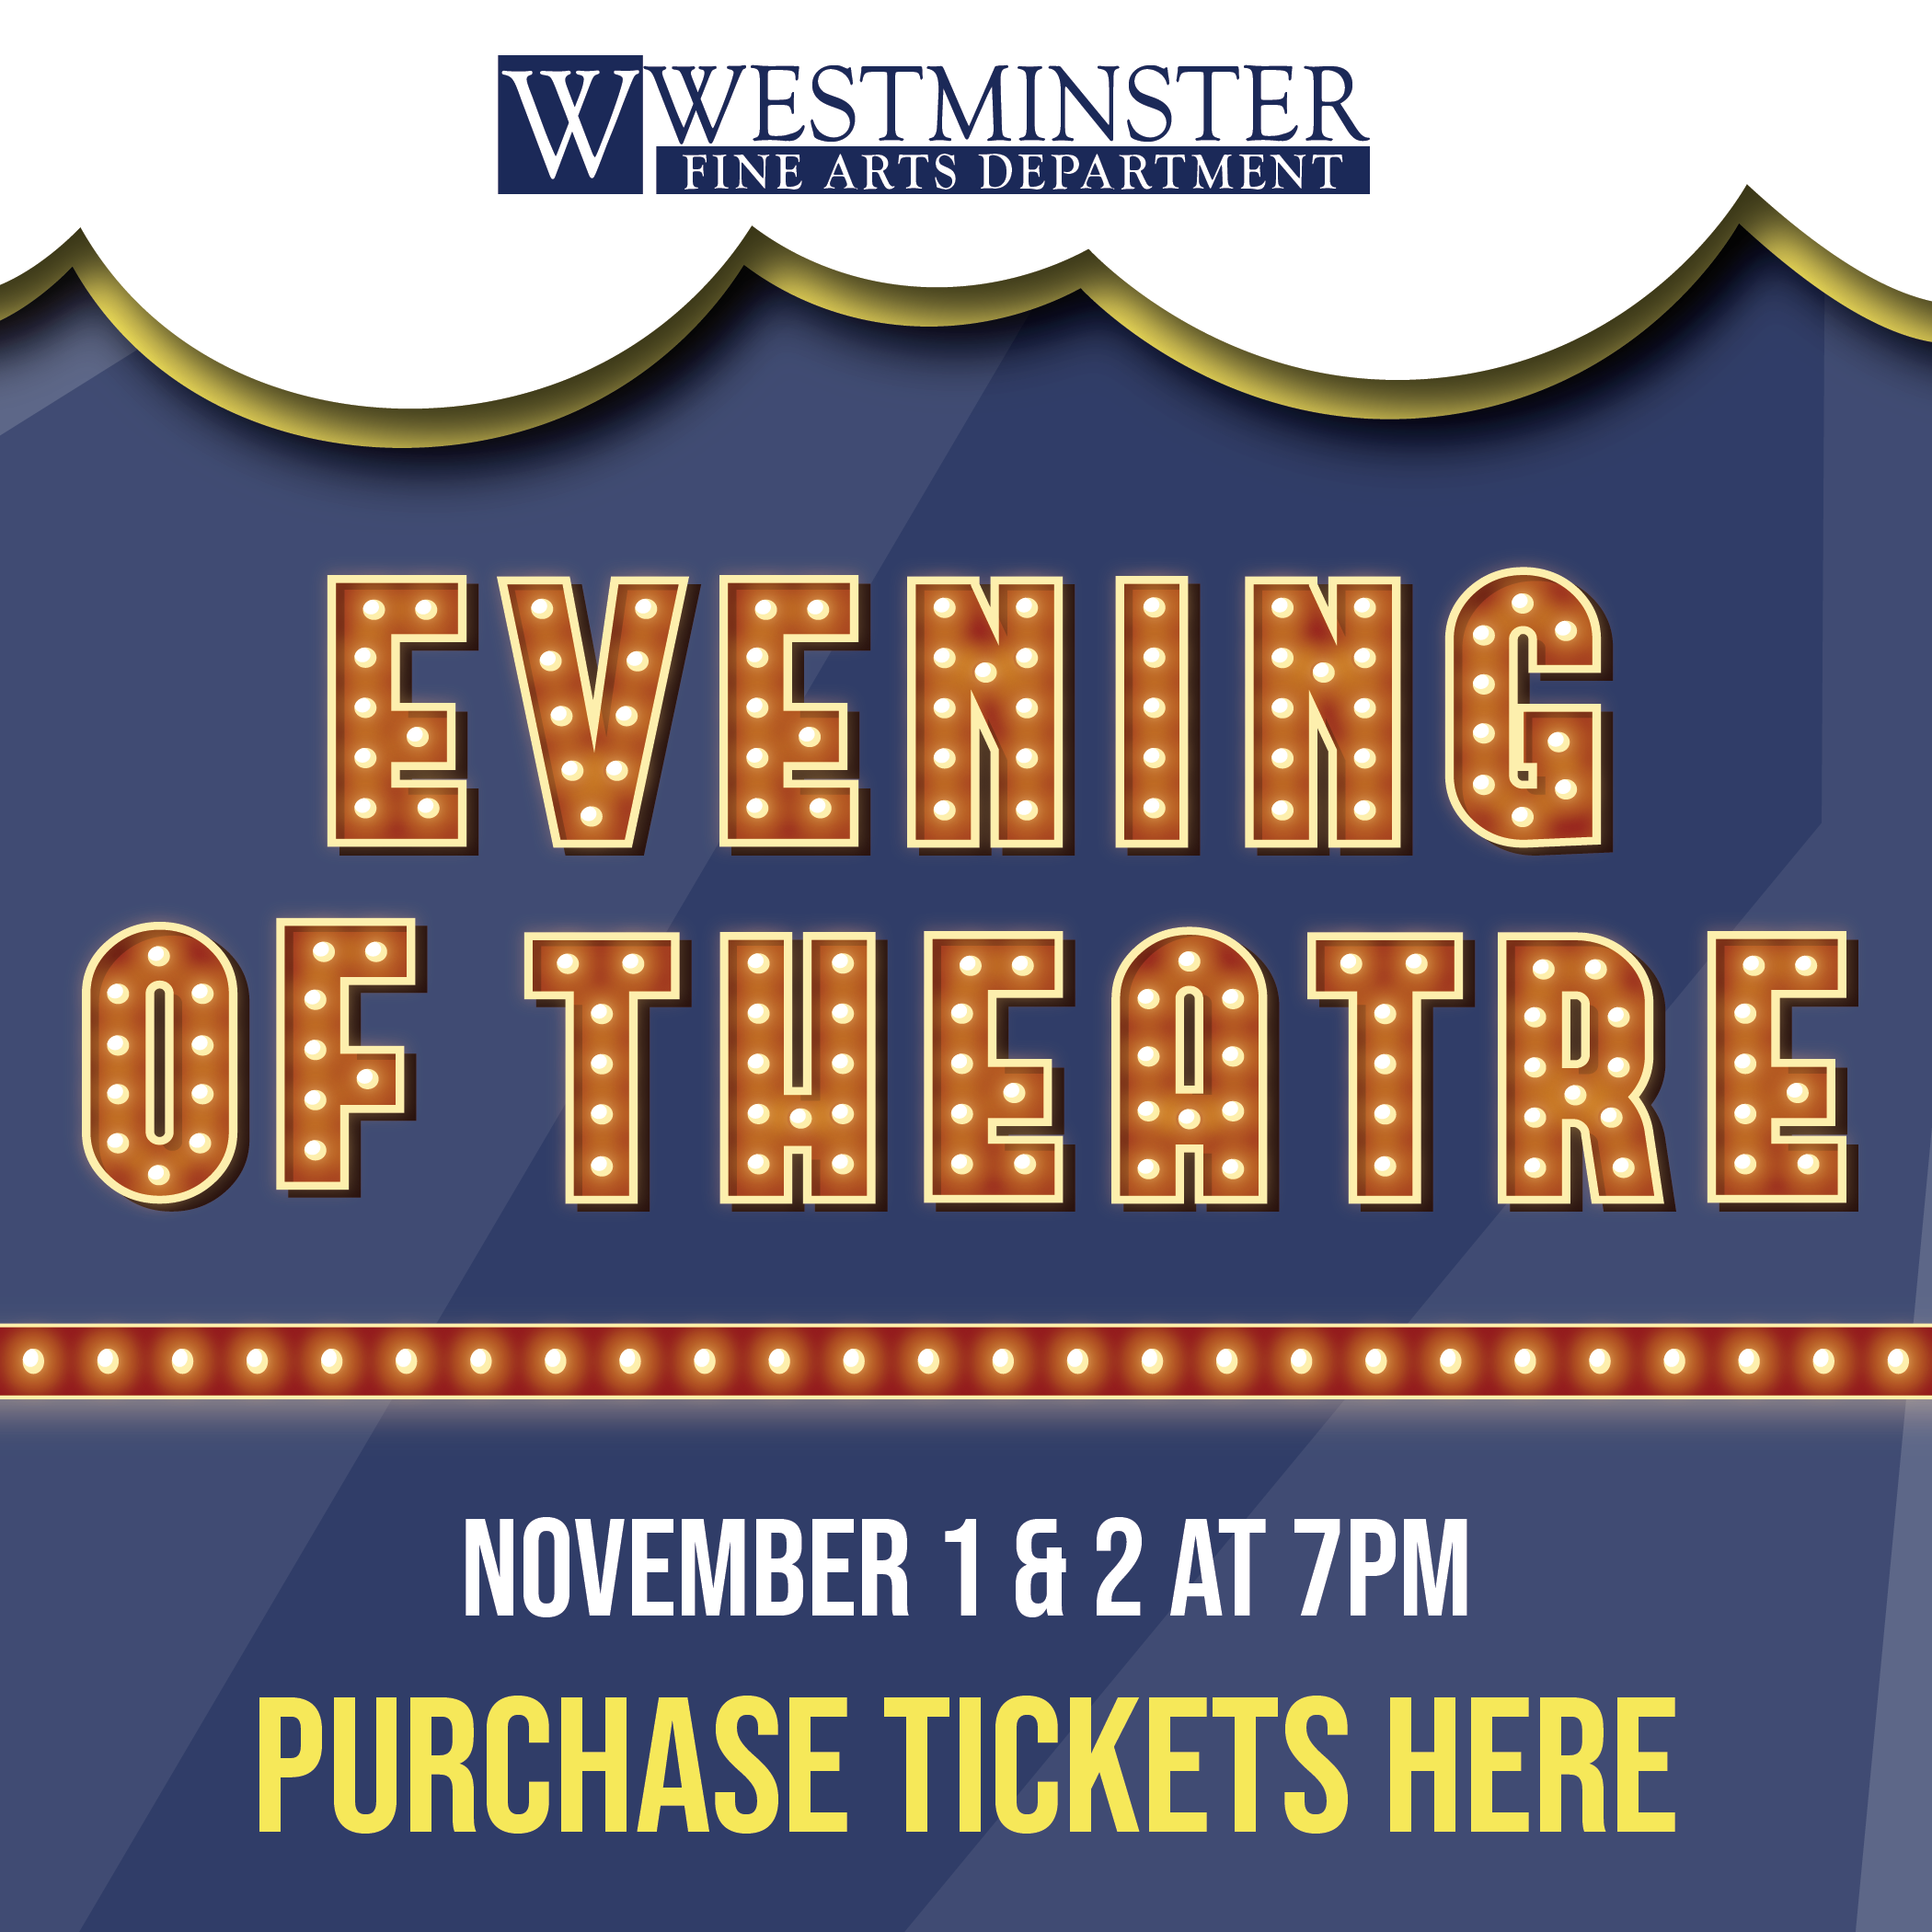 Evening of Theatre | Westminster